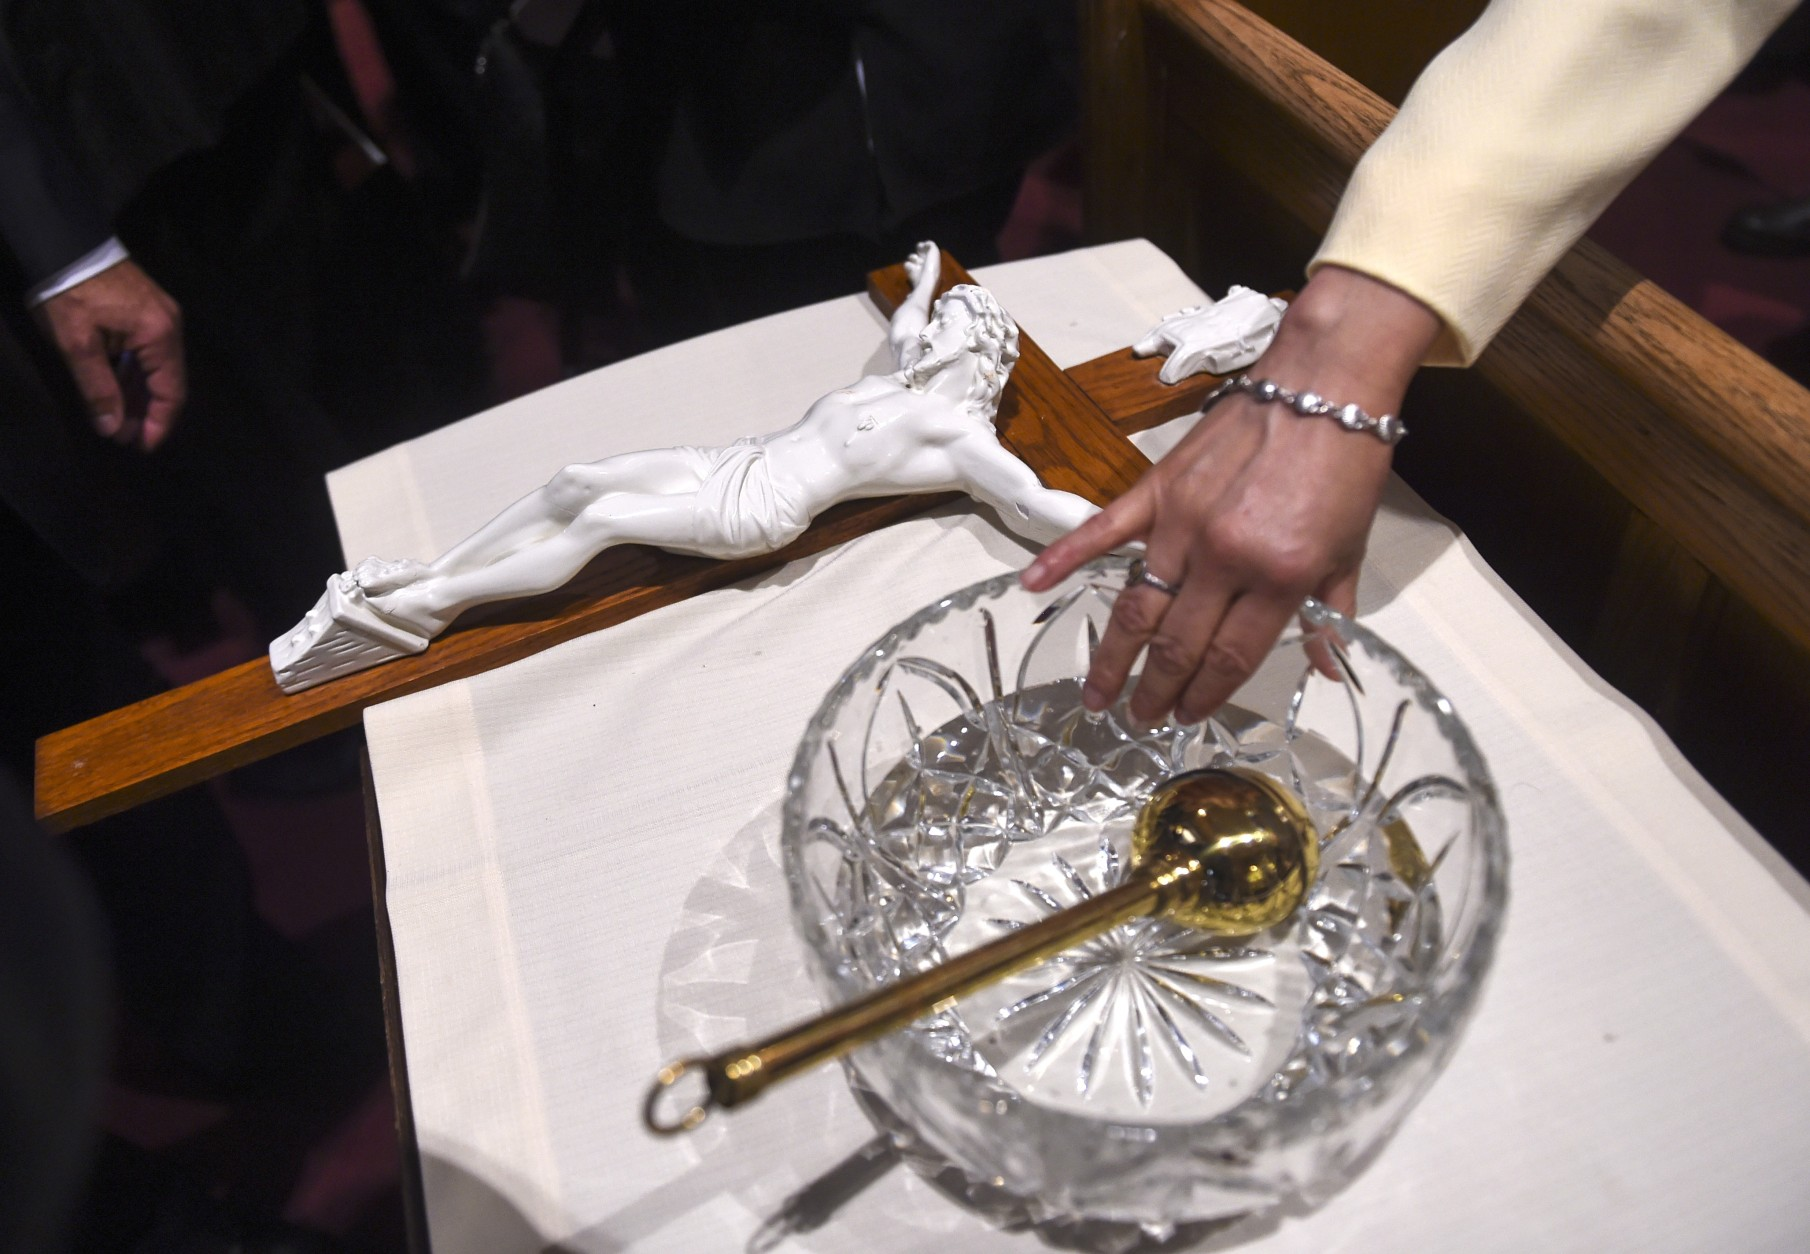 WASHINGTON, DC - SEPTEMBER, 23: A lady dips her finger in the holy water bowl that Pope Francis used to bless the crowd during Midday Prayer of the Divine with more than 300 U.S. Bishops at the Cathedral of St. Matthew the Apostle on September 23, 2015 in Washington, DC. The Pope is on a three-day visit of Washington, D.C. as part of a larger visit to the U.S. (Photo by Jonathan Newton-Pool/Getty Images)